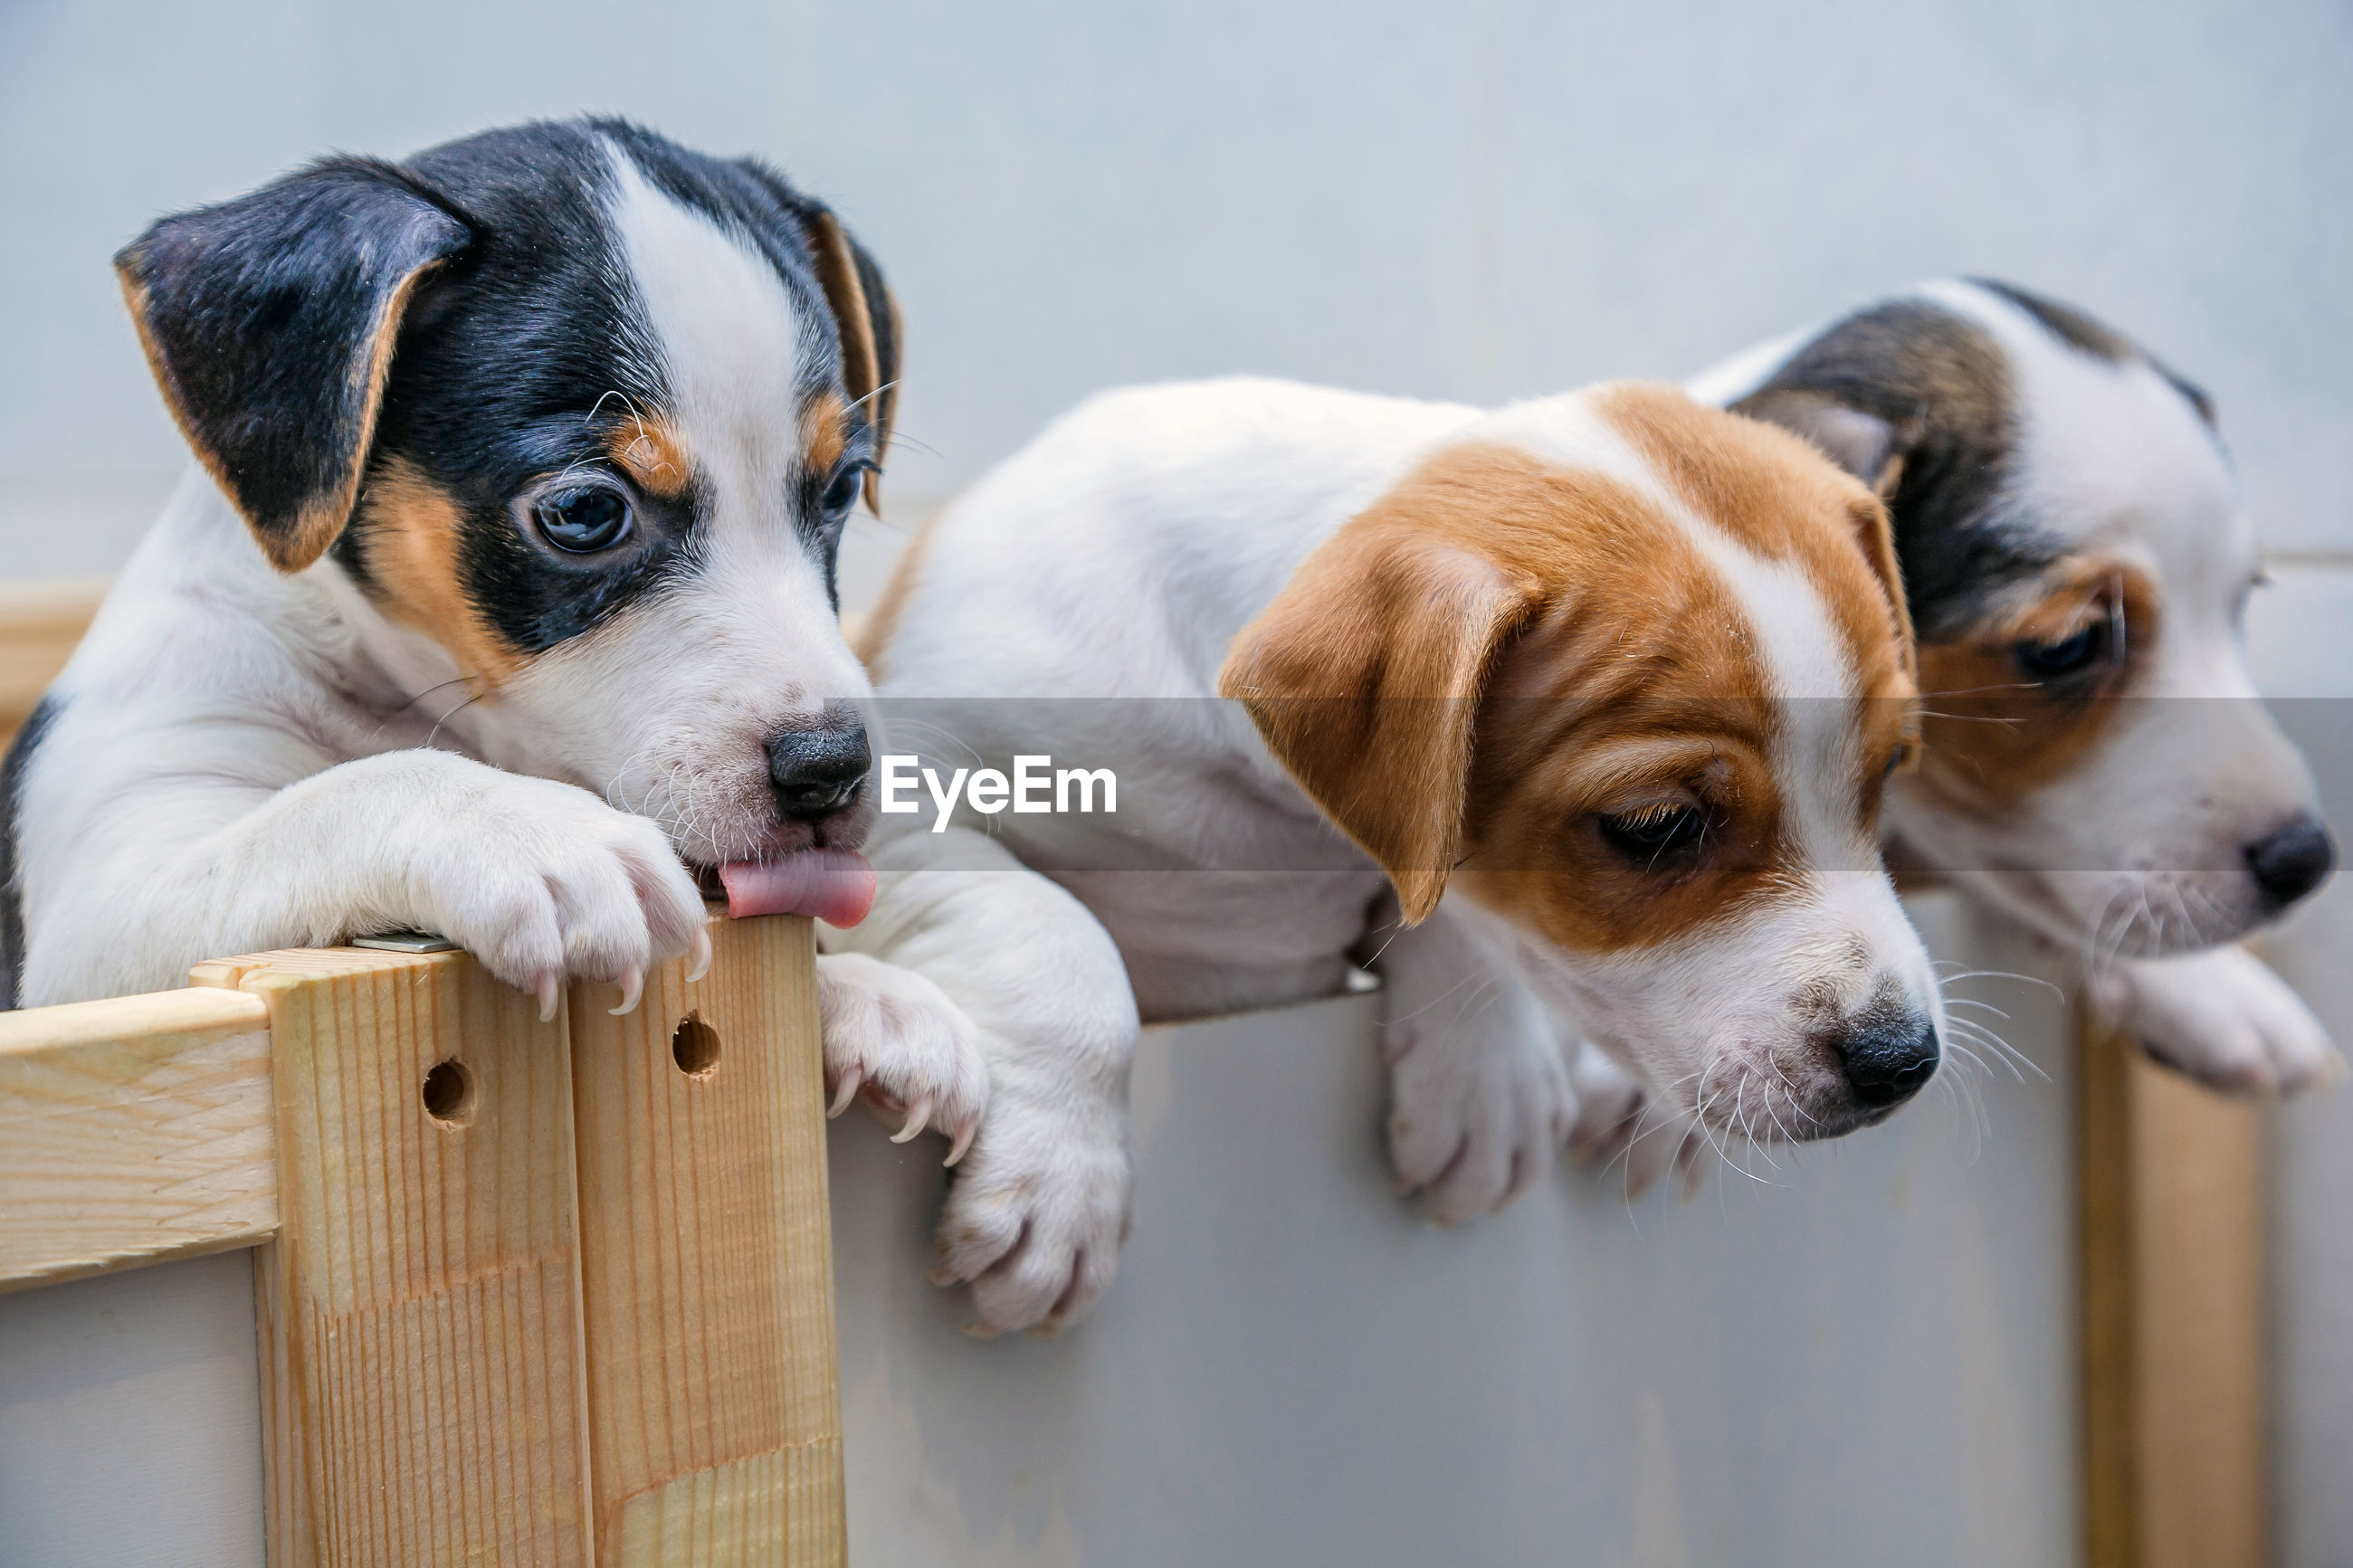 Close-up of puppies in crate at home